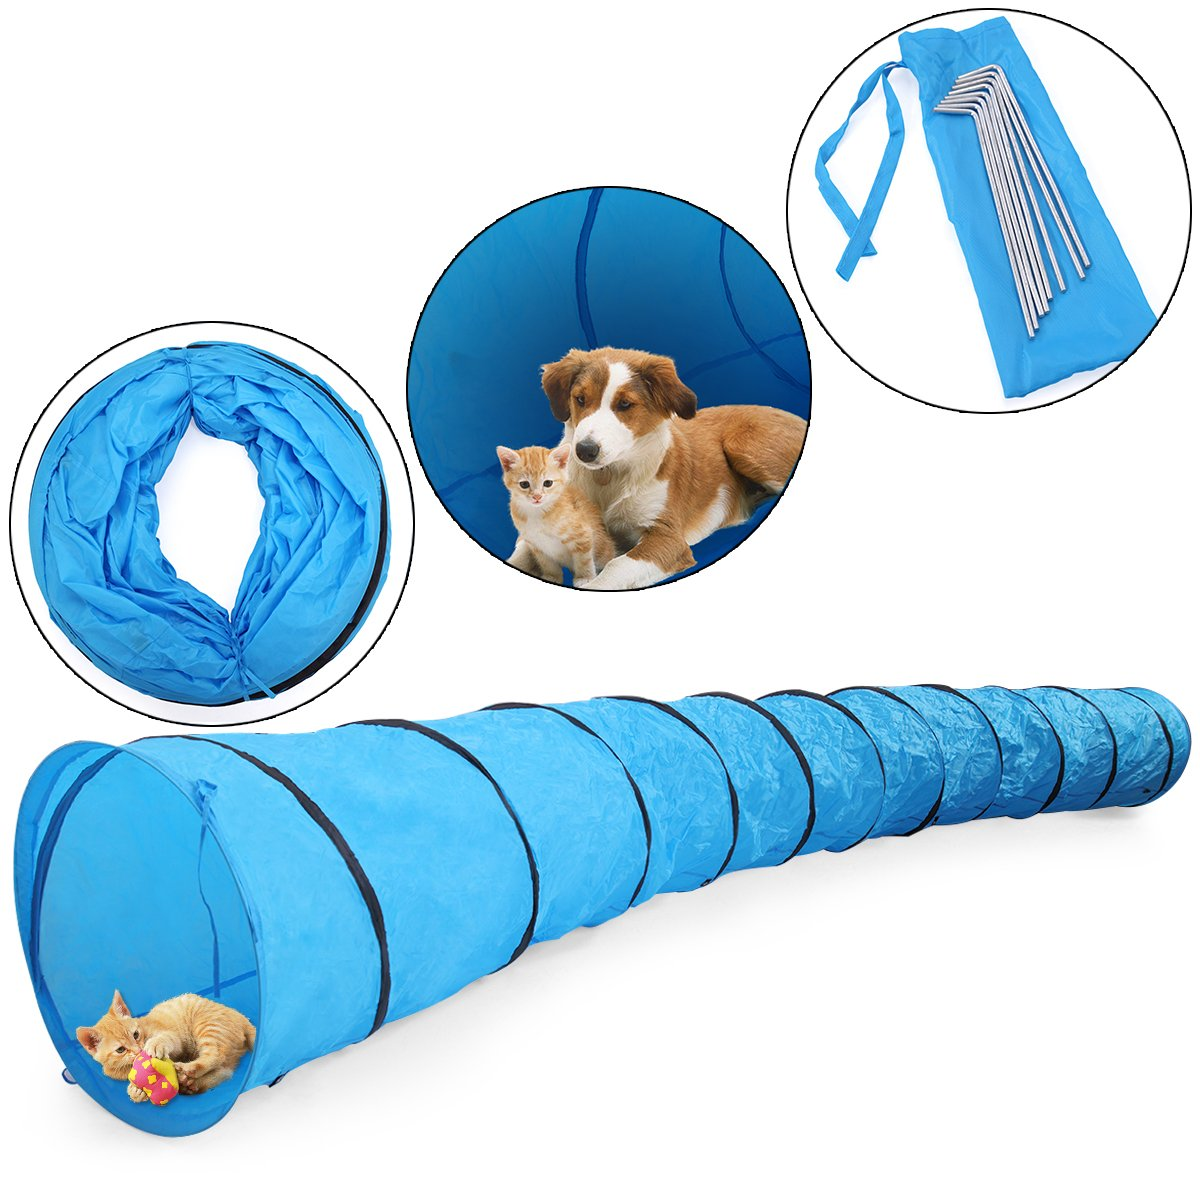 JAXPETY 16.4' Pet Dog Agility Obedience Training Tunnel Pet Channel Dog Outdoor Games Agility by JAXPETY